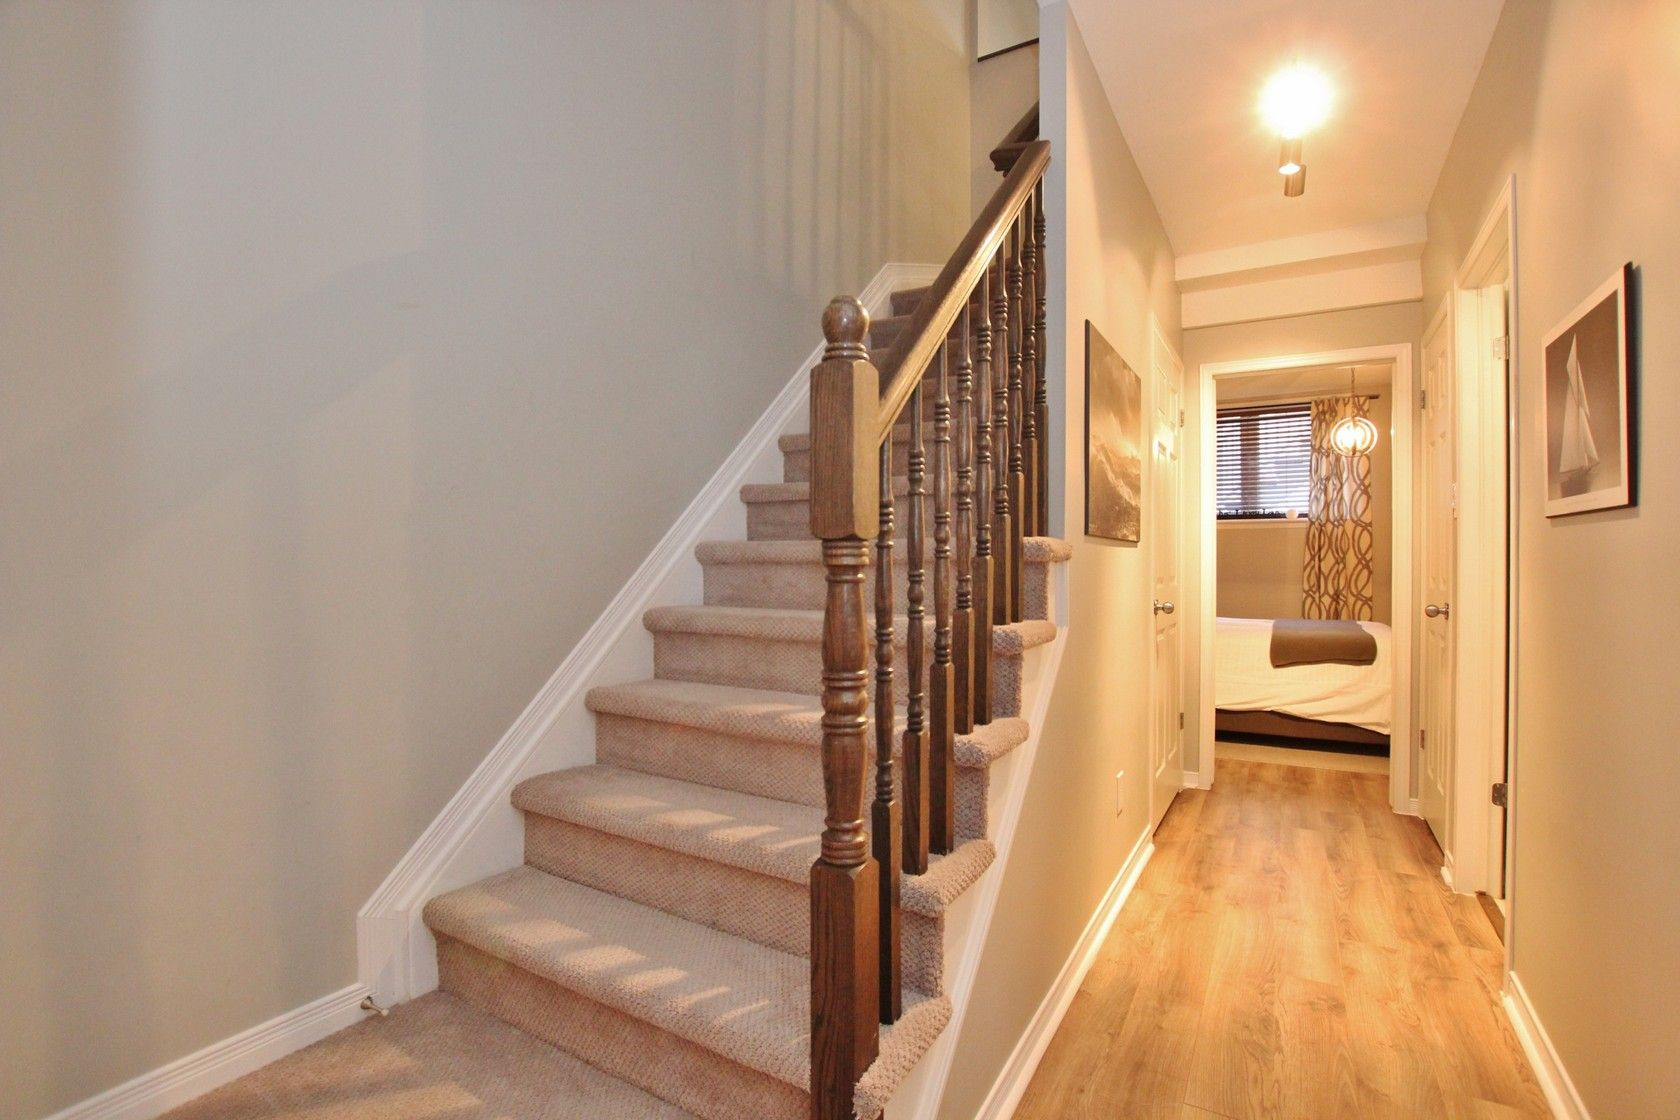 Best New Neutral Berber Carpet On The Stairs Paired With Wide 400 x 300